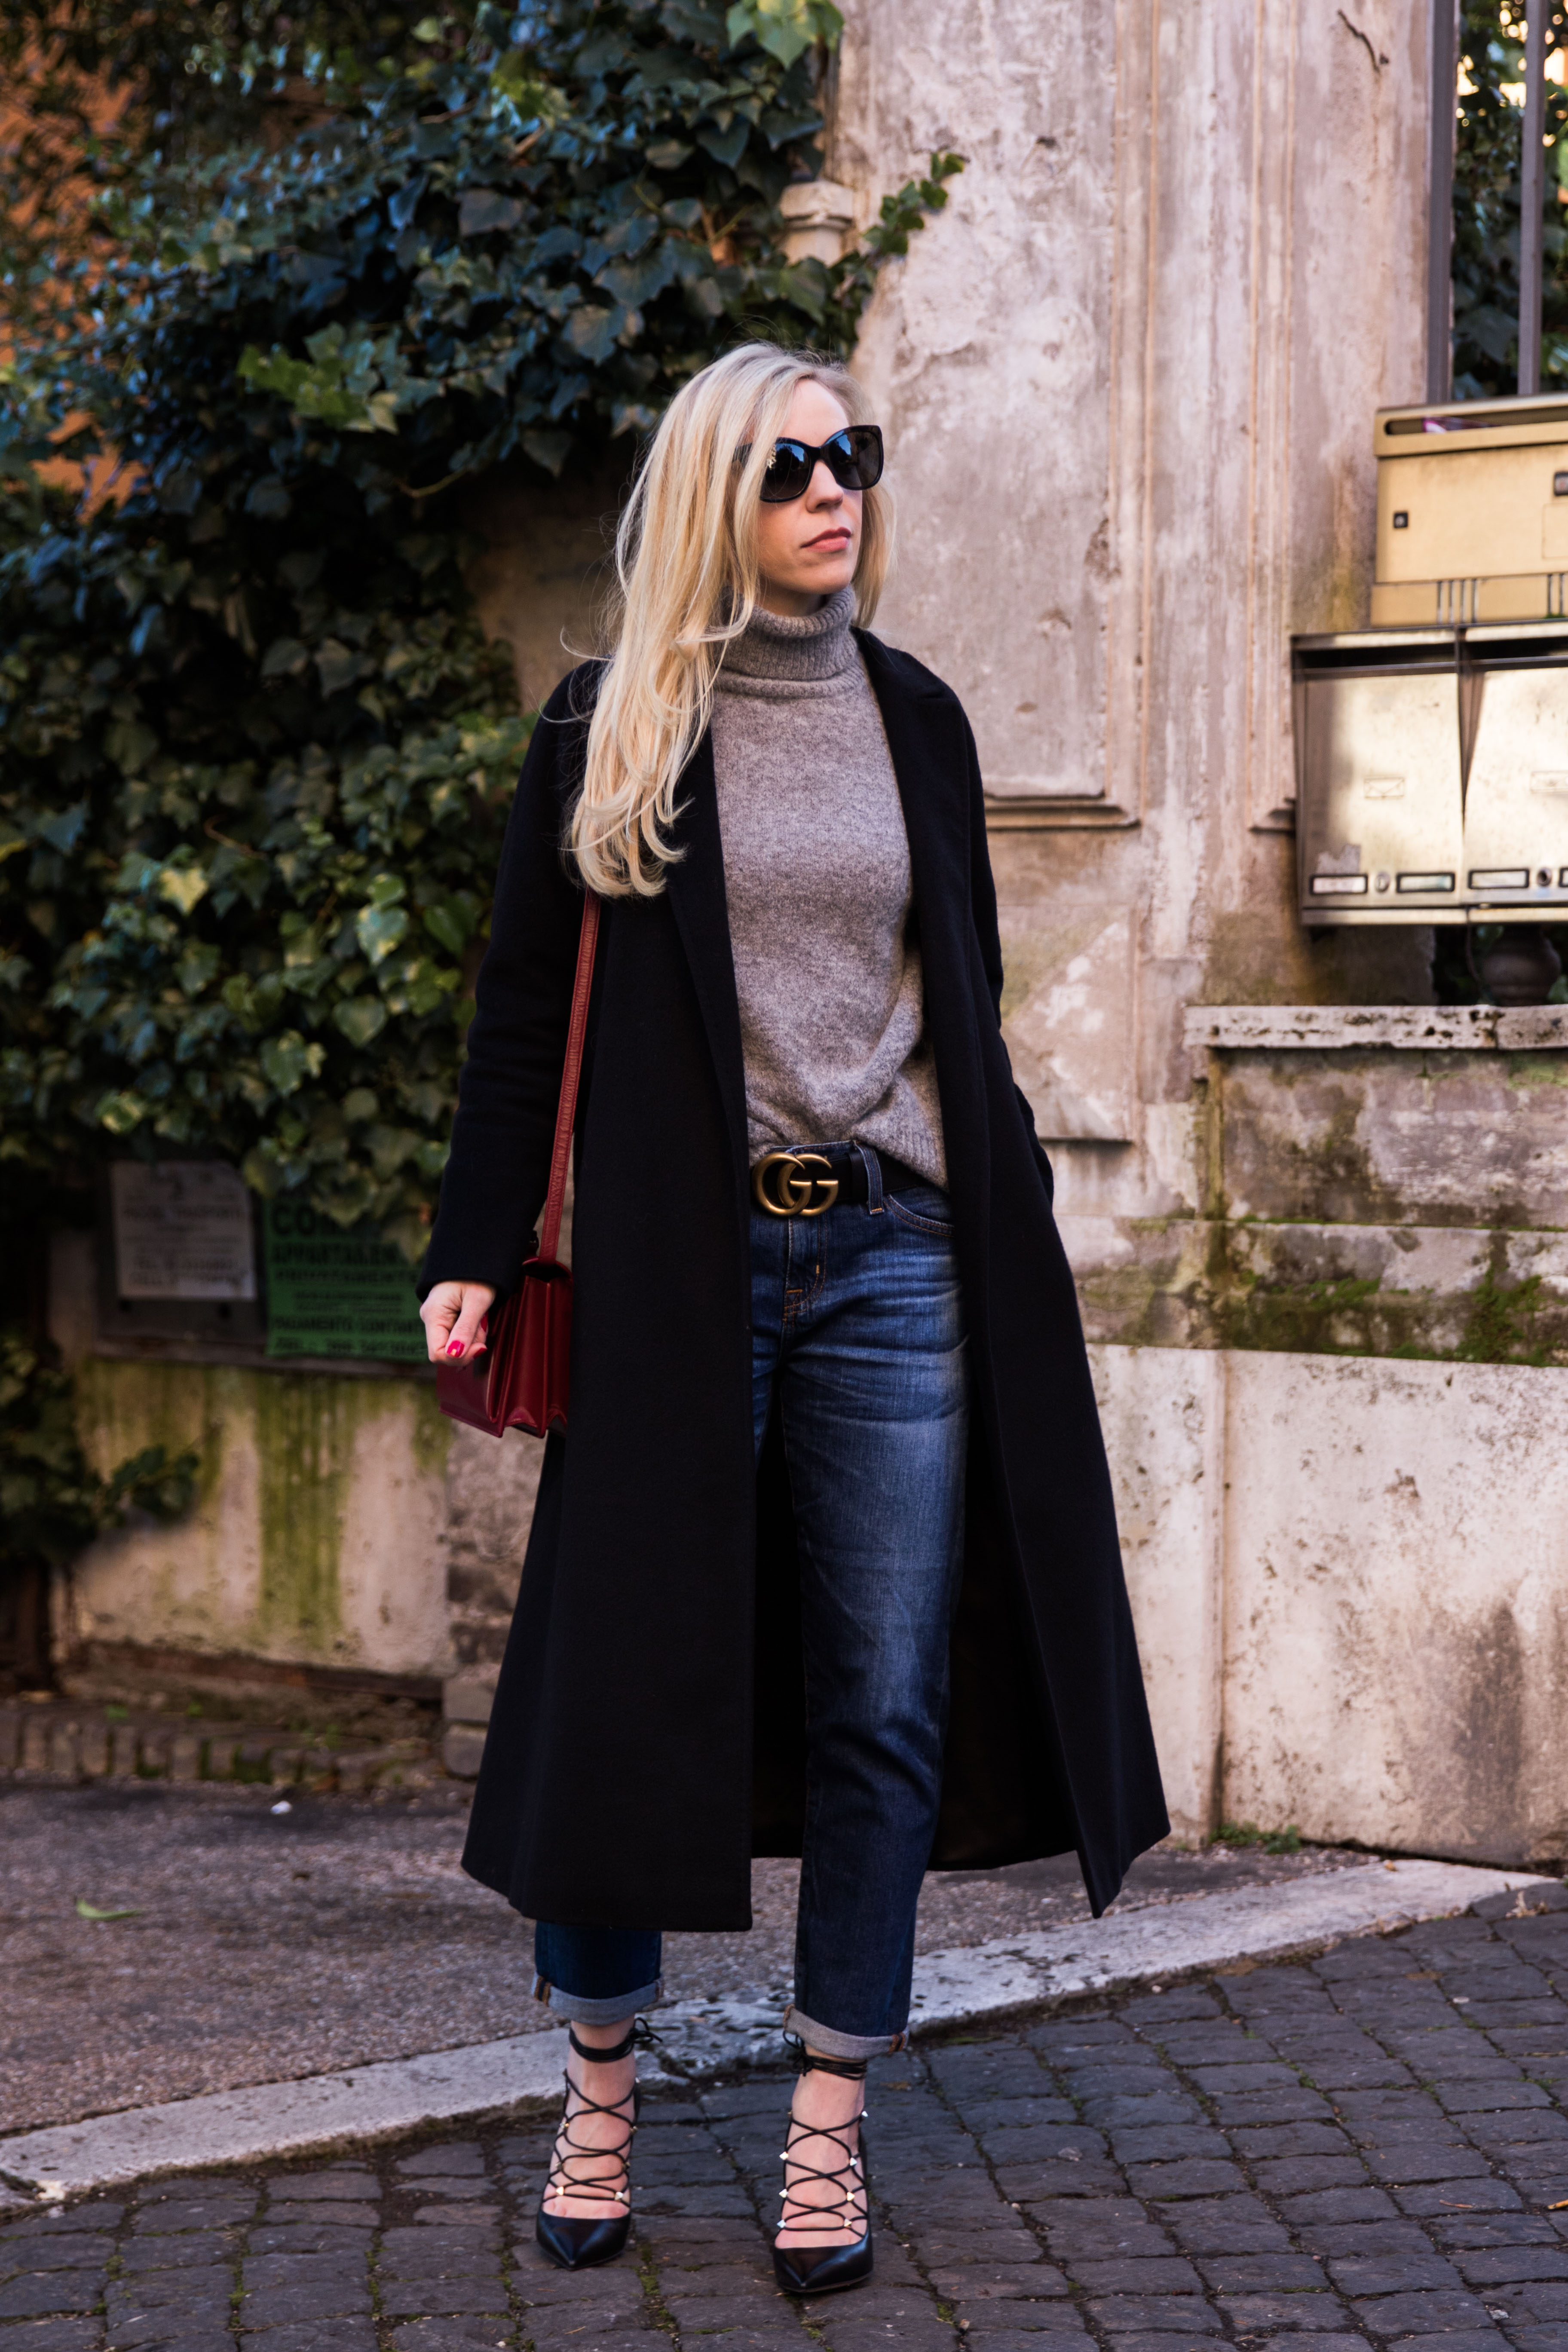 fashion blogger Meagan Brandon wearing Max Mara black wrap coat with turtleneck, Gucci belt and boyfriend jeans, Valentino lace-up pump